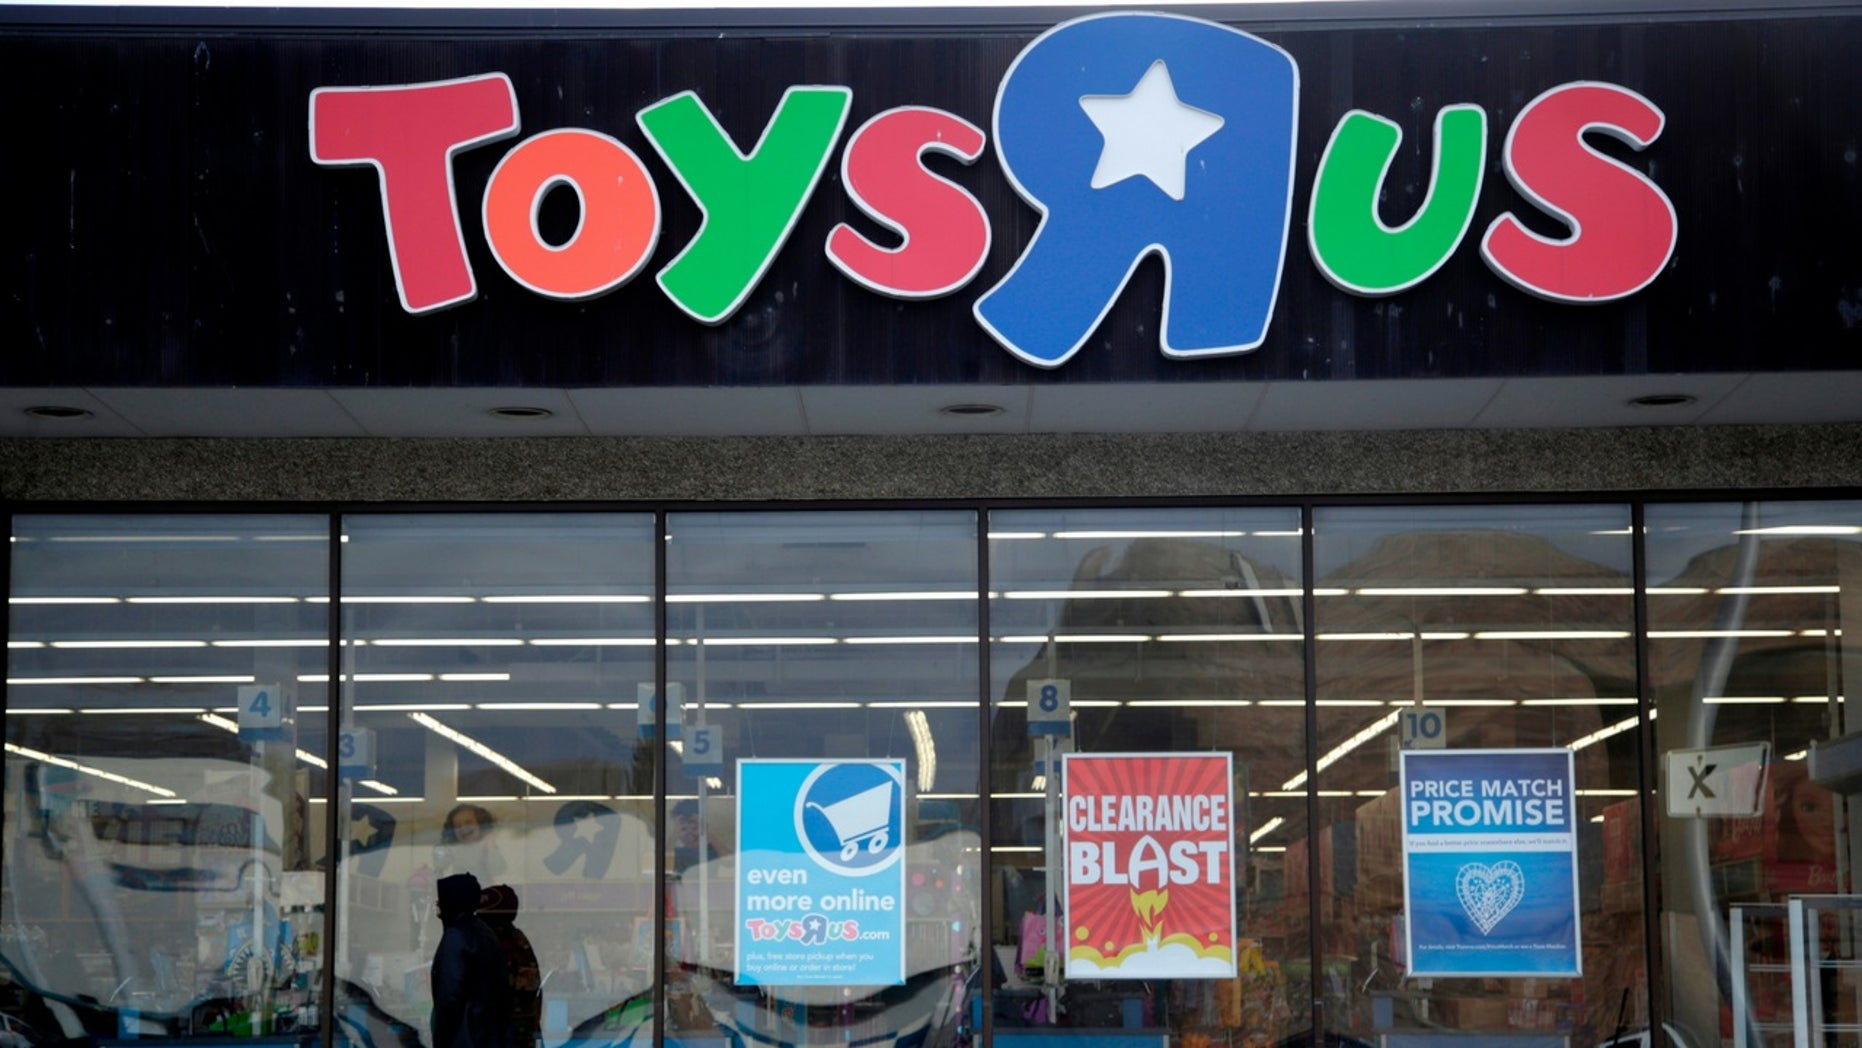 A mysterious man purchased $1 million worth of toys at a Toys R Us and donated them to children.